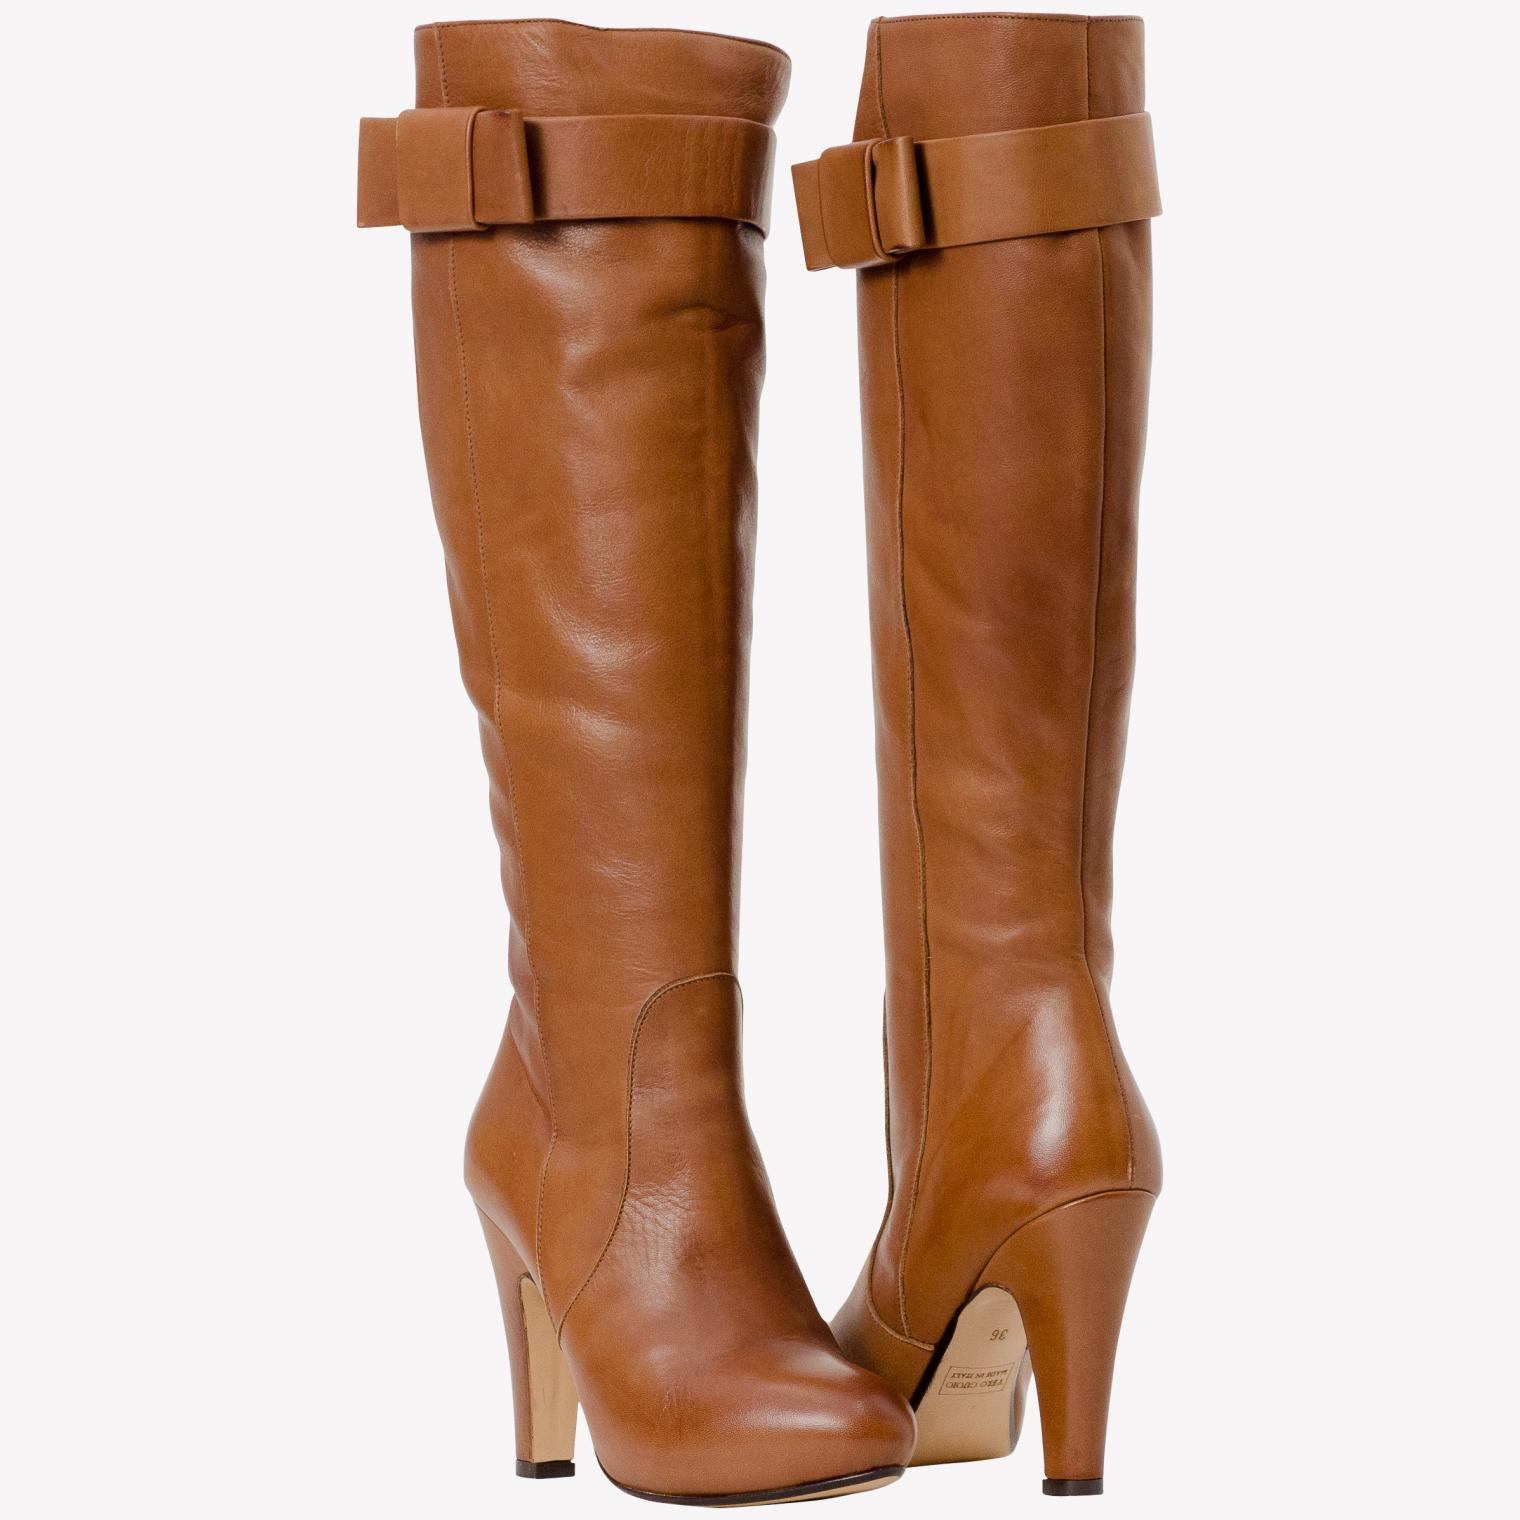 Brown Leather Boots For Women VDUWmTVk